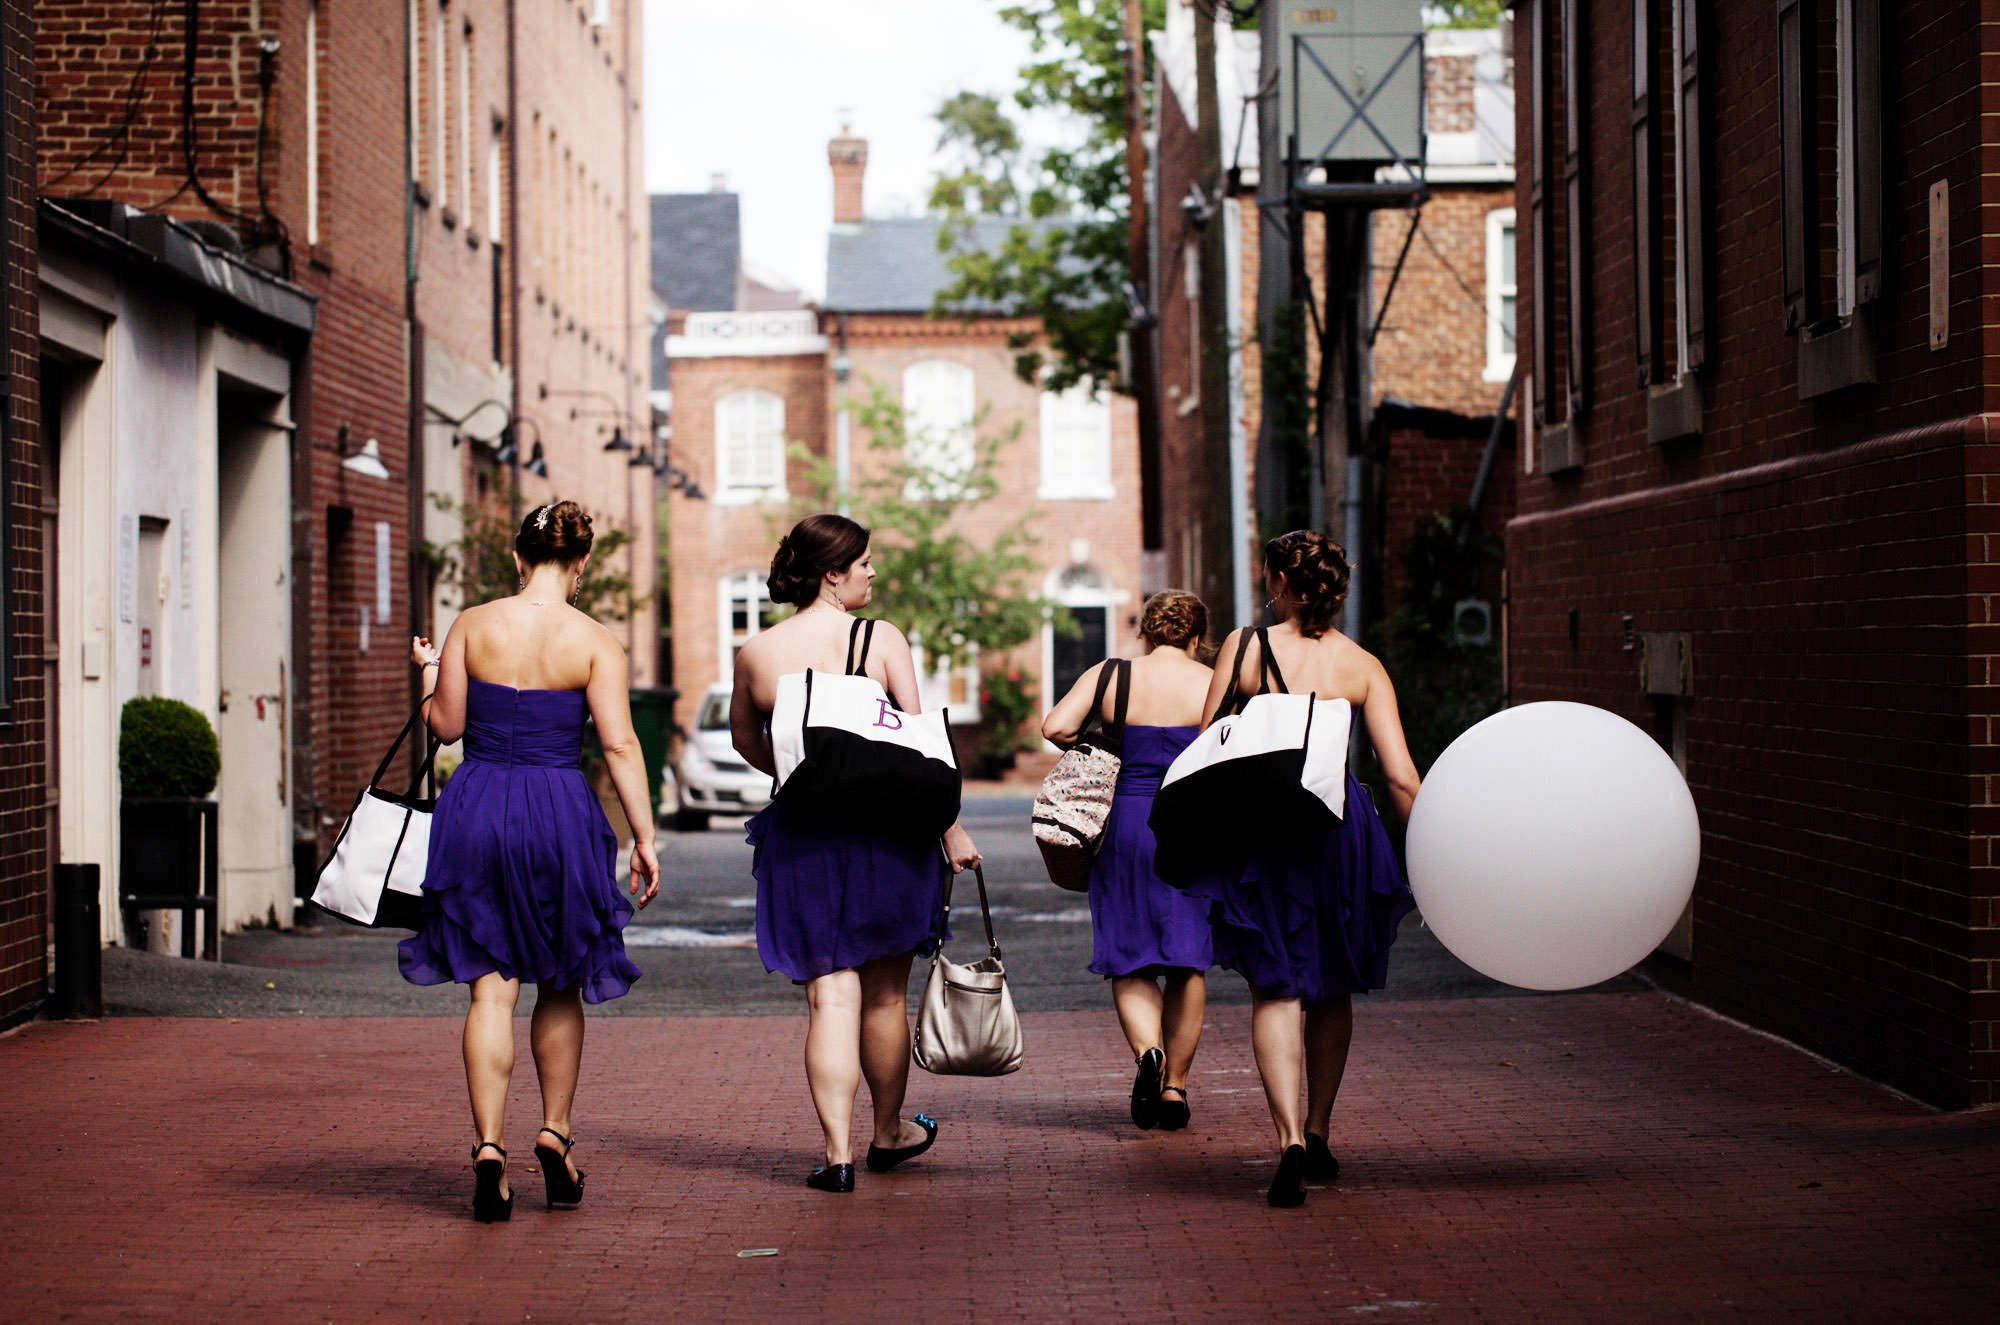 Bridesmaids walk through an alley carrying balloons before the wedding ceremony at Topedo Factory.